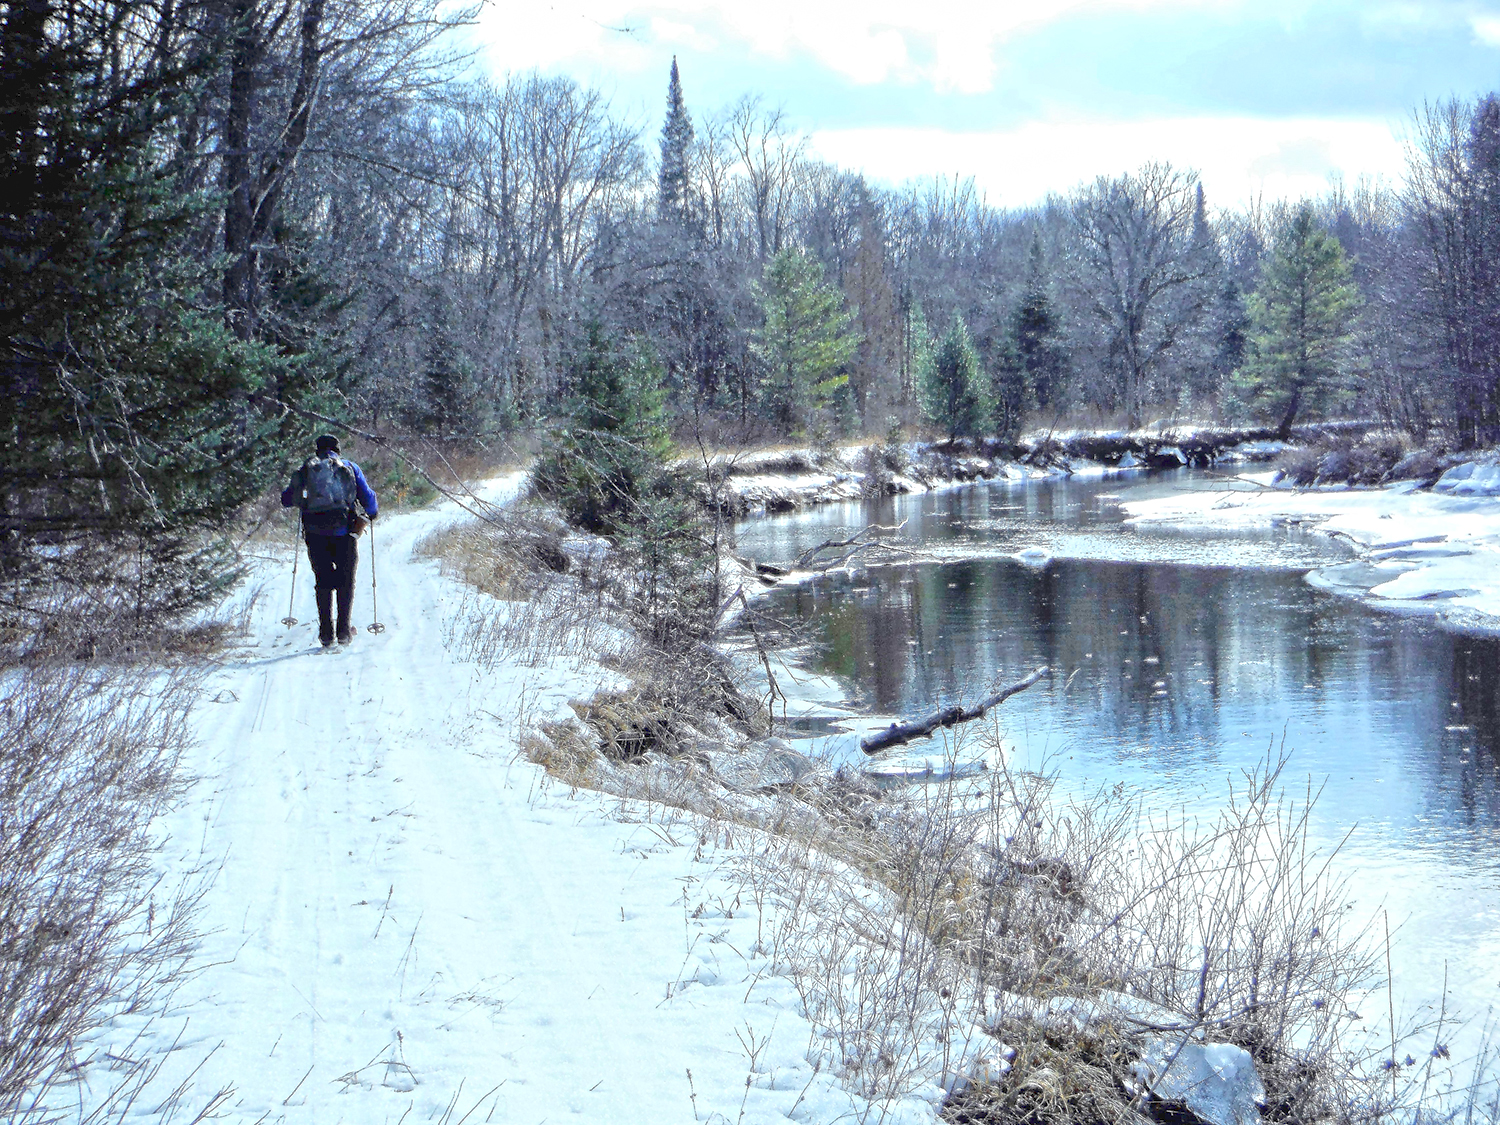 Skiing alongside the Opalescent   River in the MacIntyre East tract.   Rich Macha